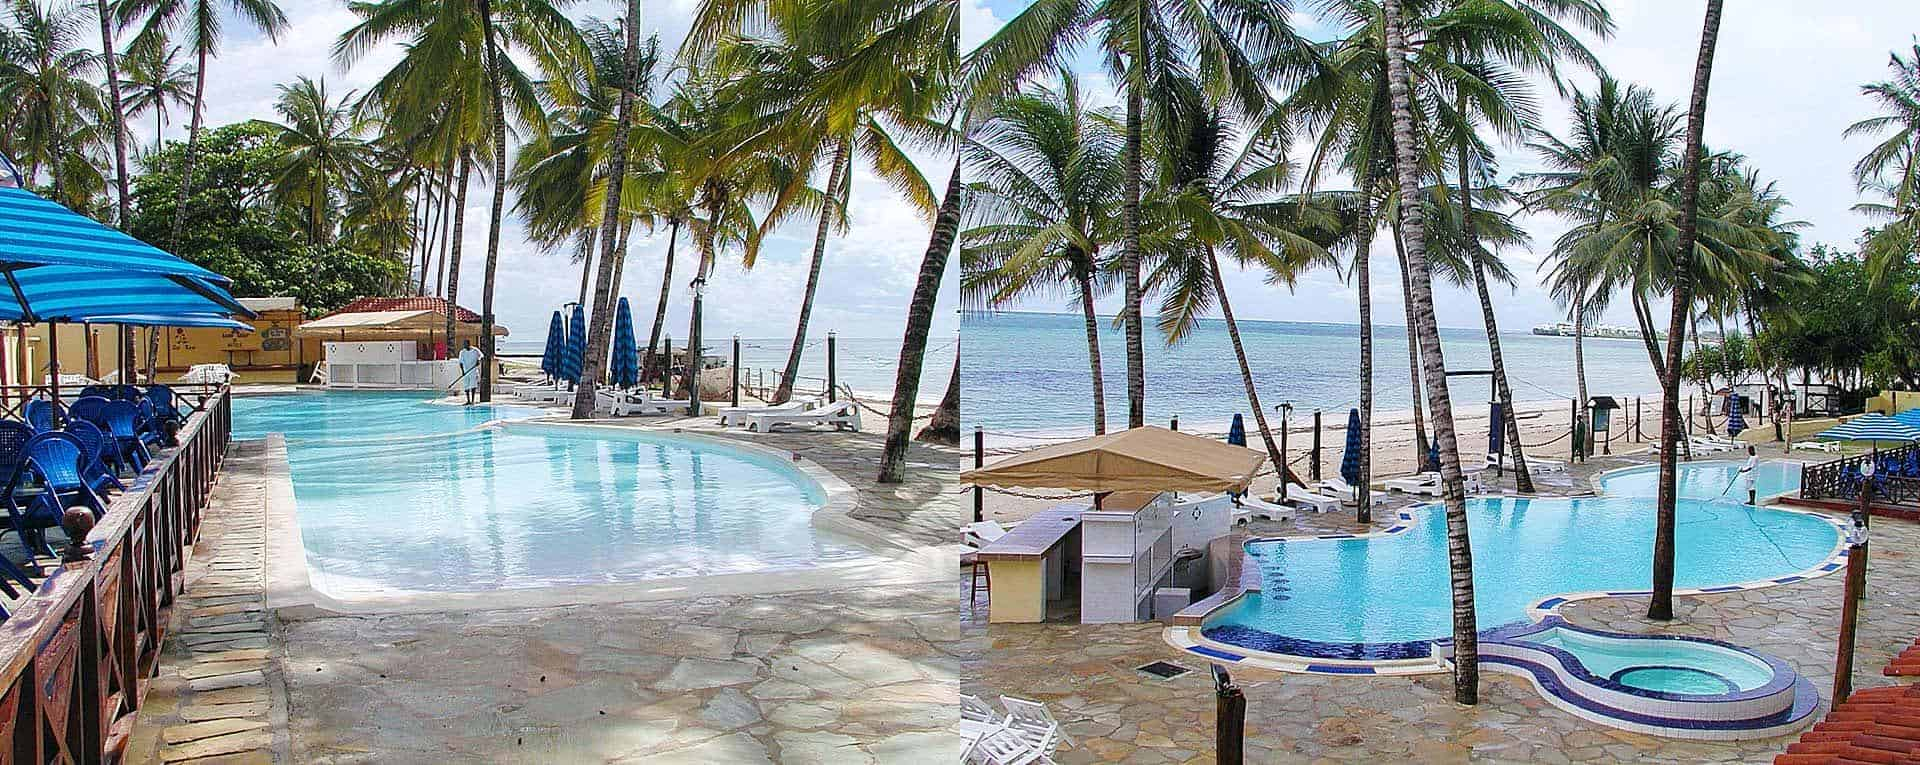 Photos, Images & Pictures For Sai Rock Beach Hotel In Mombasa, Kenya